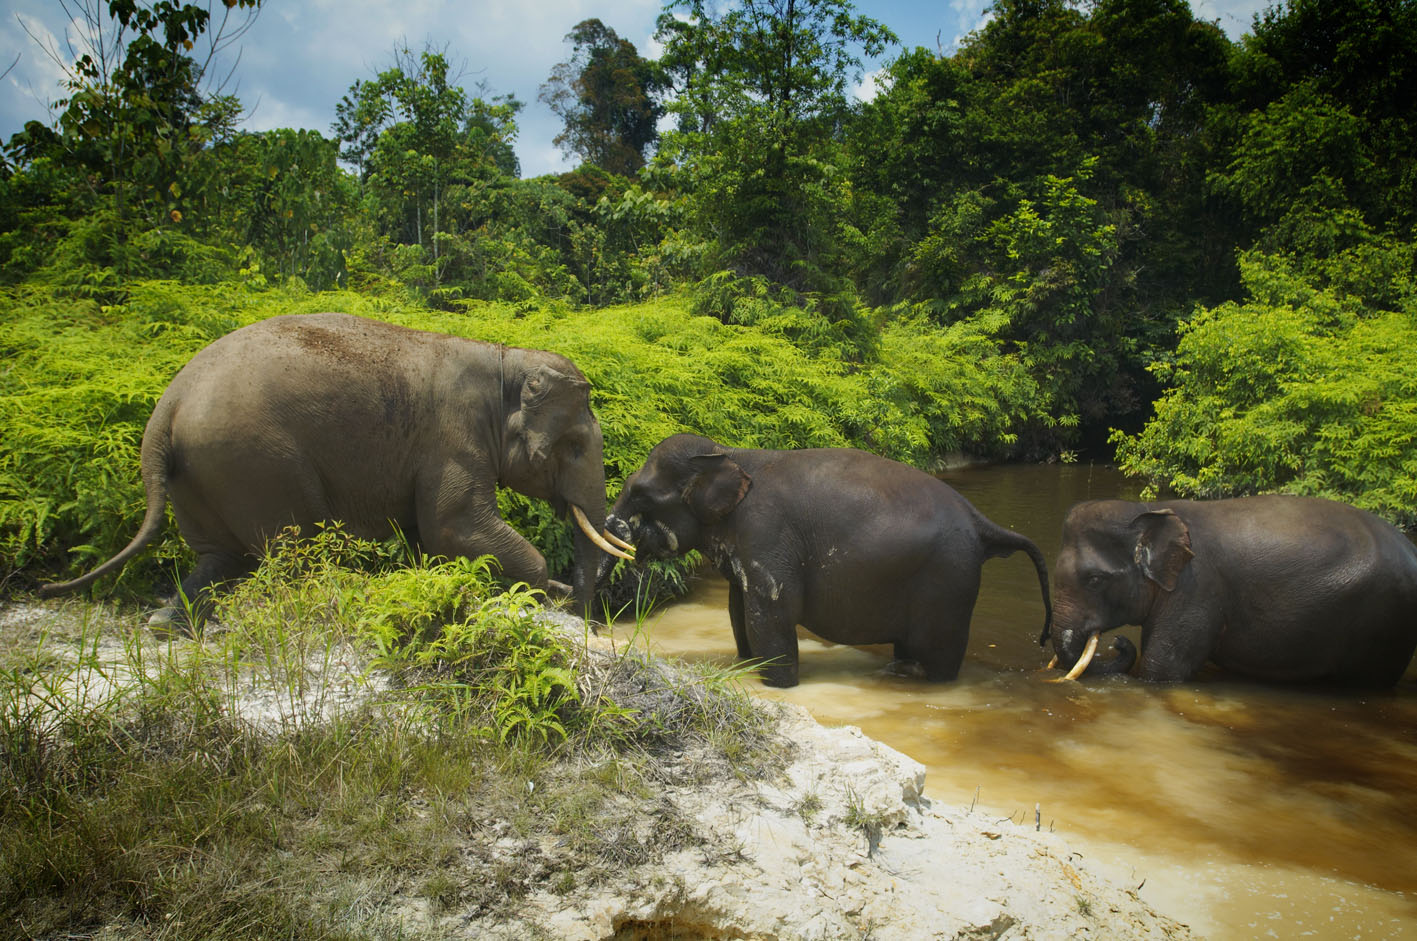 RAPP and Asian Agri's Efforts in Reducing Elephant-Human Conflicts Praised by World Wide Fund for Nature